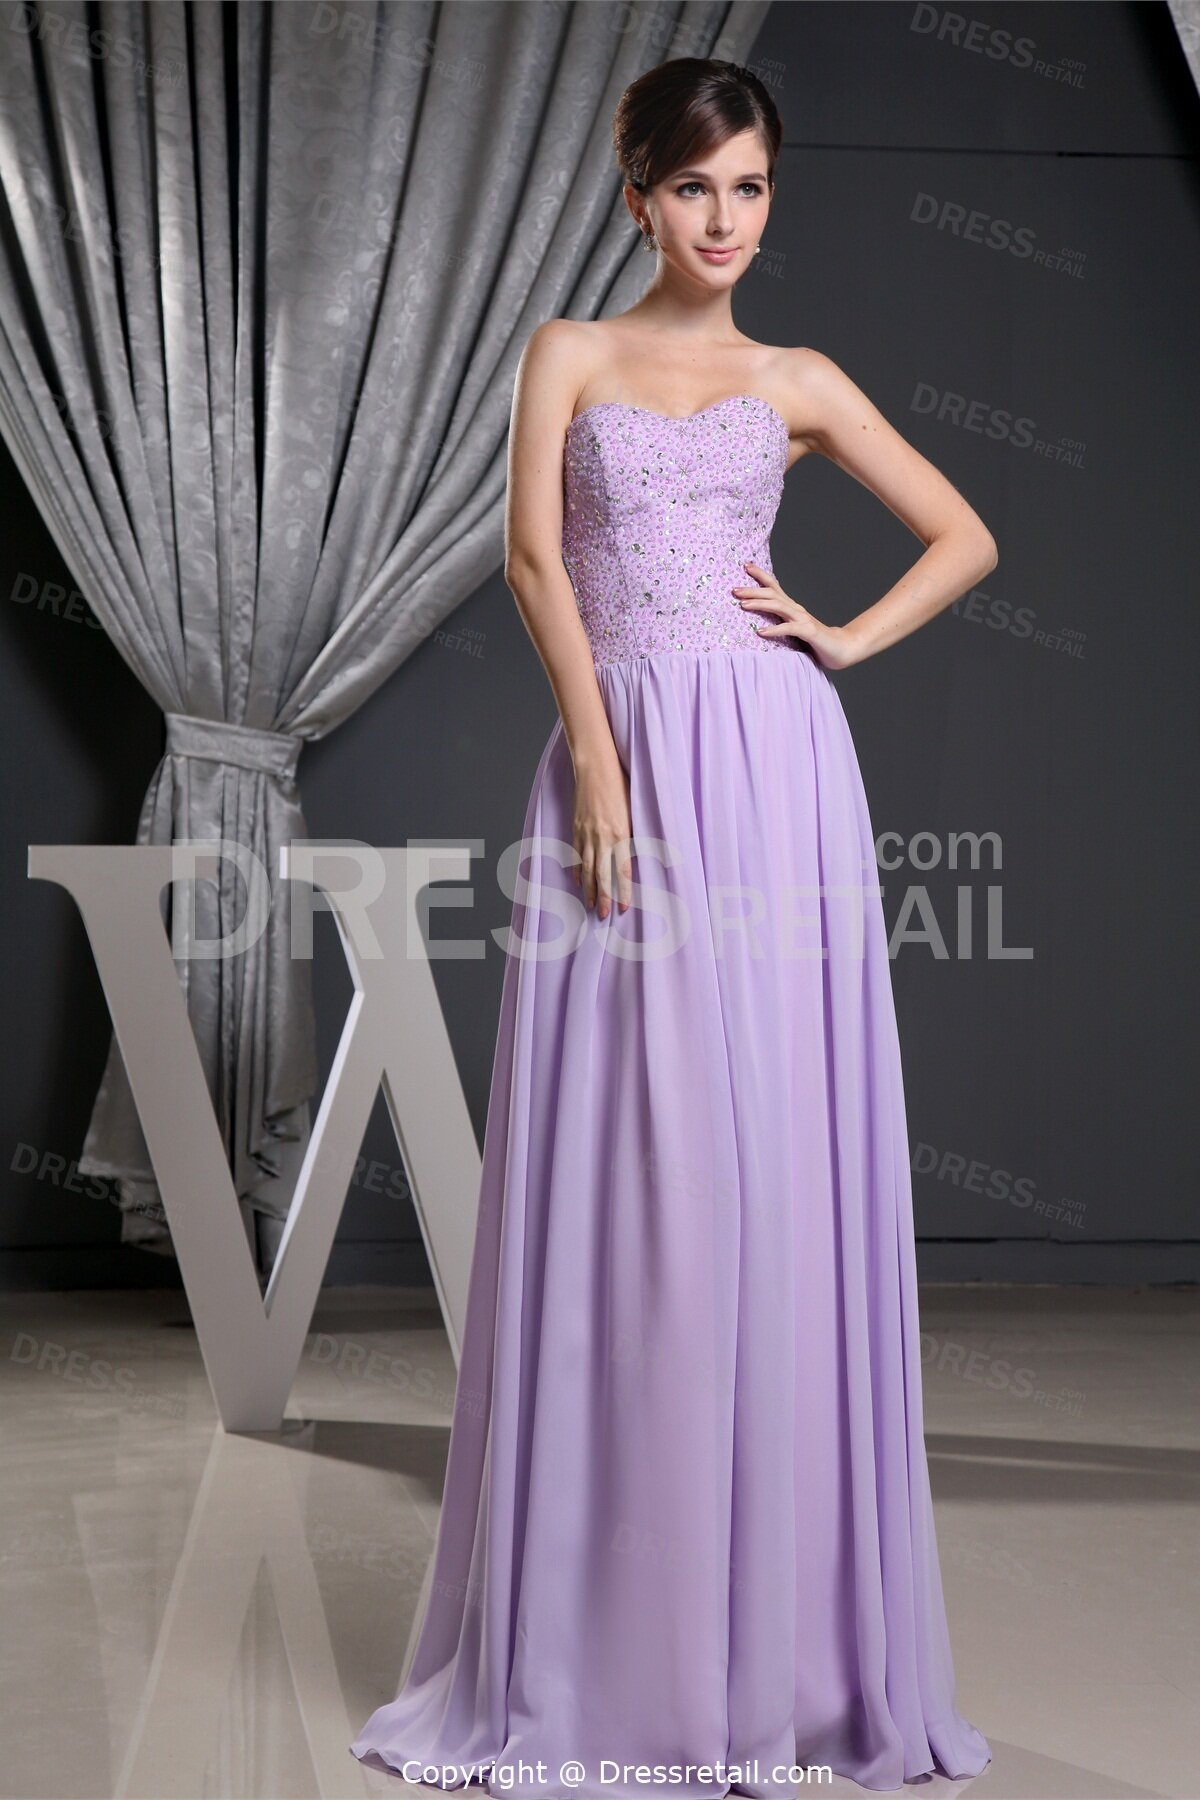 lavender wedding dress photo - 5